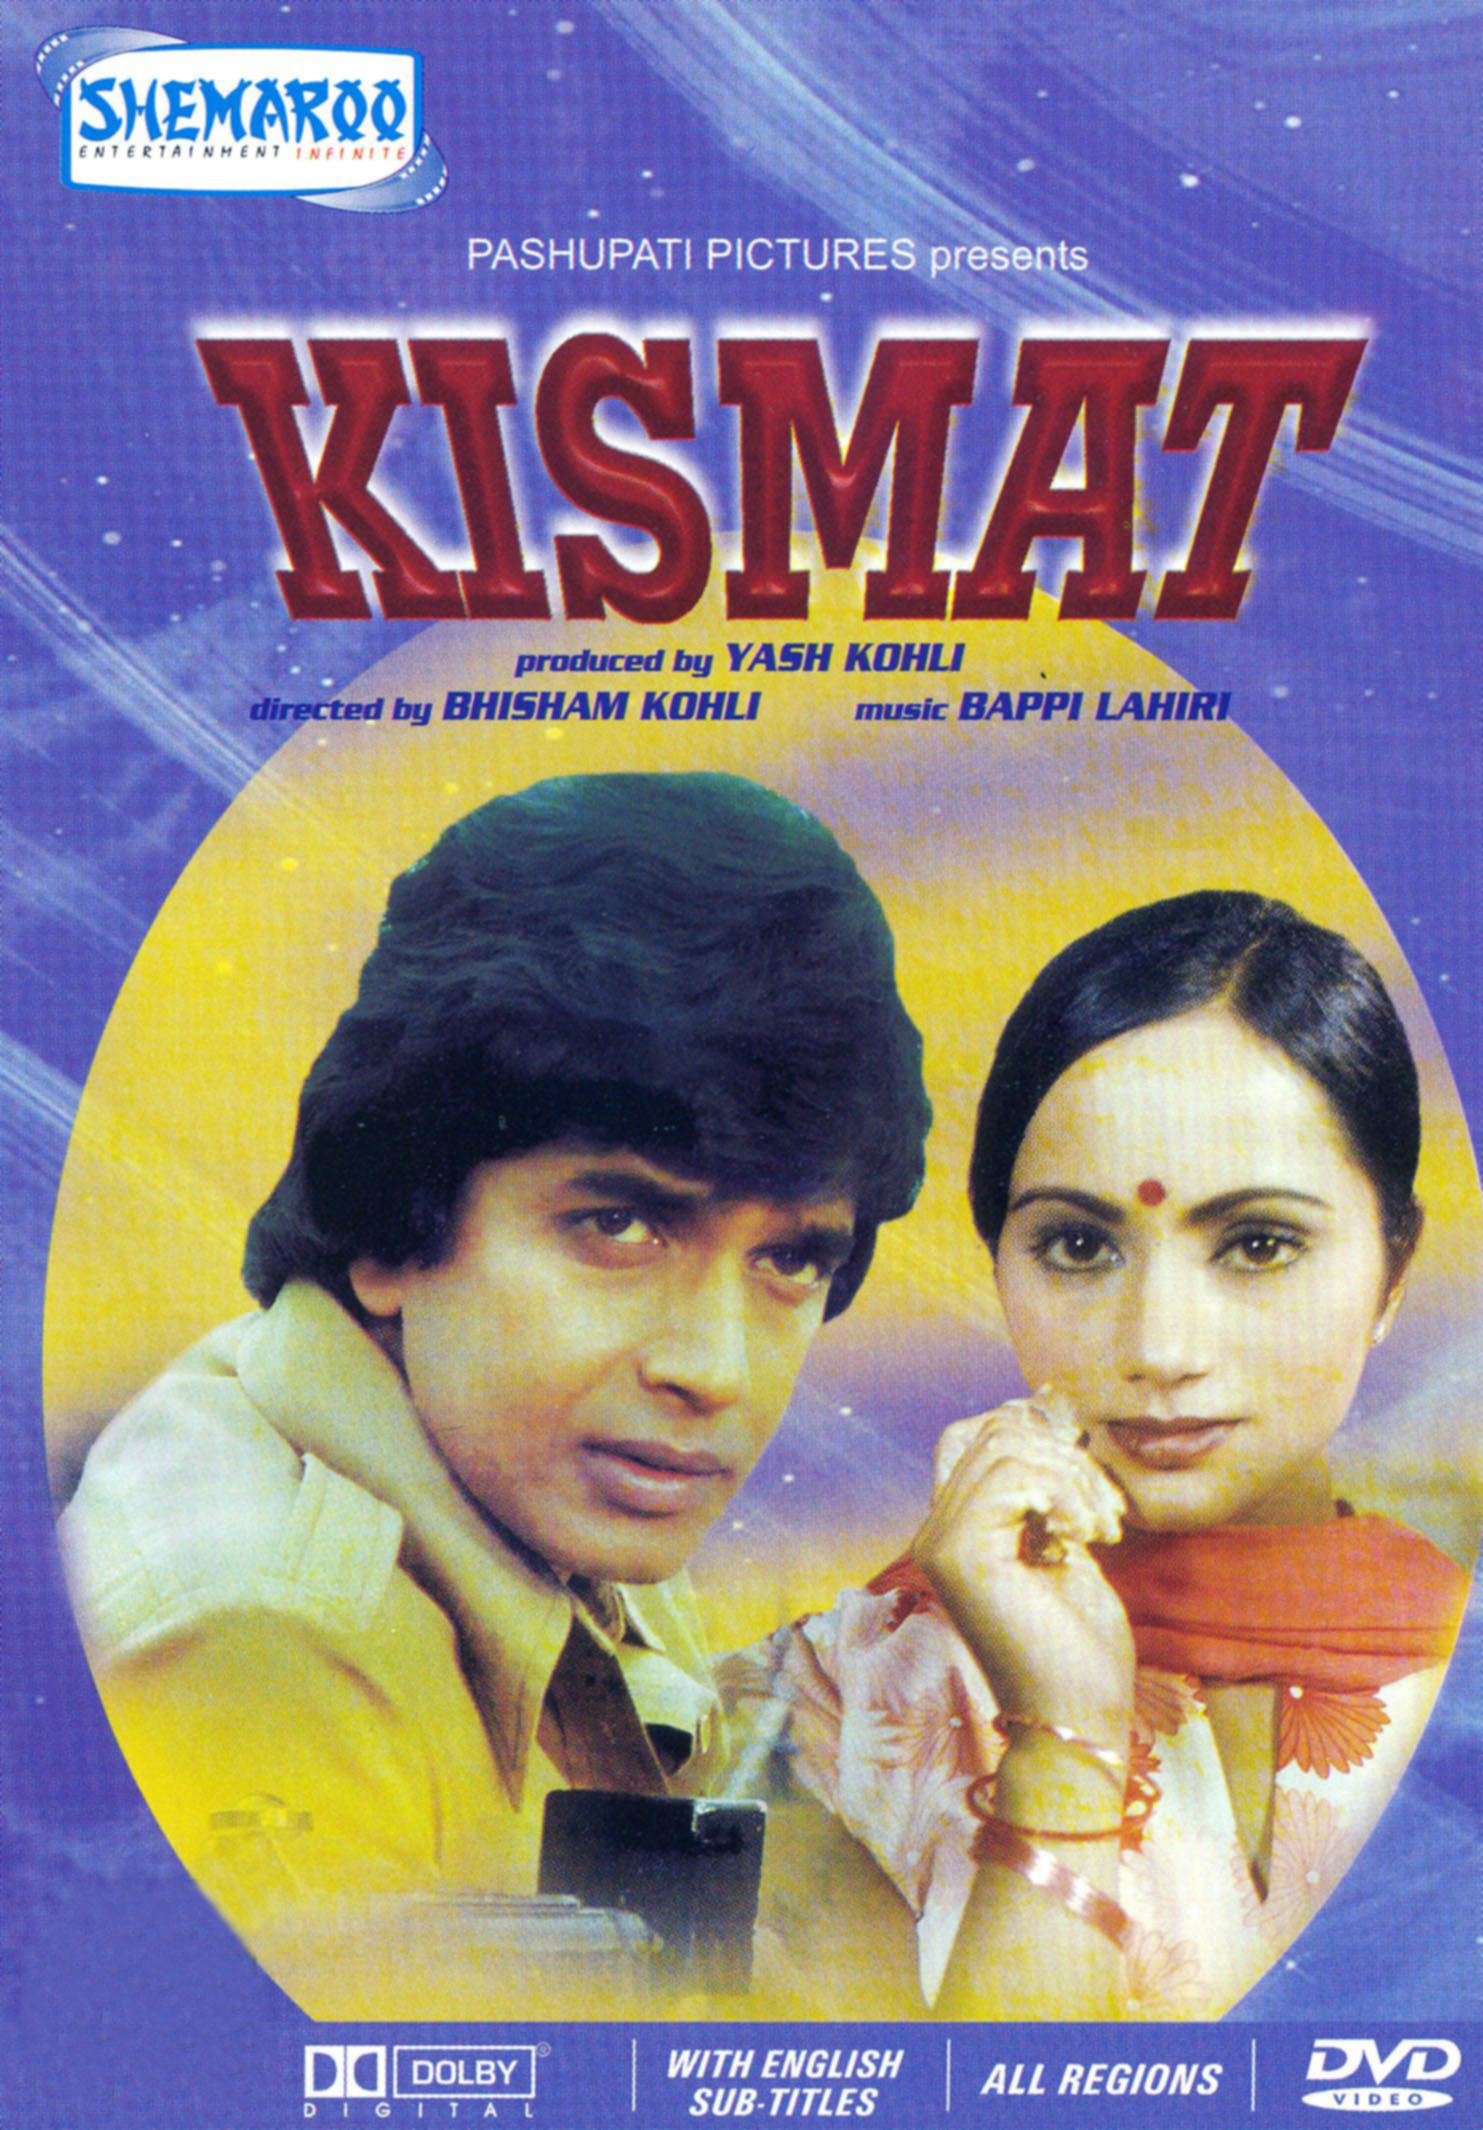 20 Kismat Movie Pictures And Ideas On Meta Networks